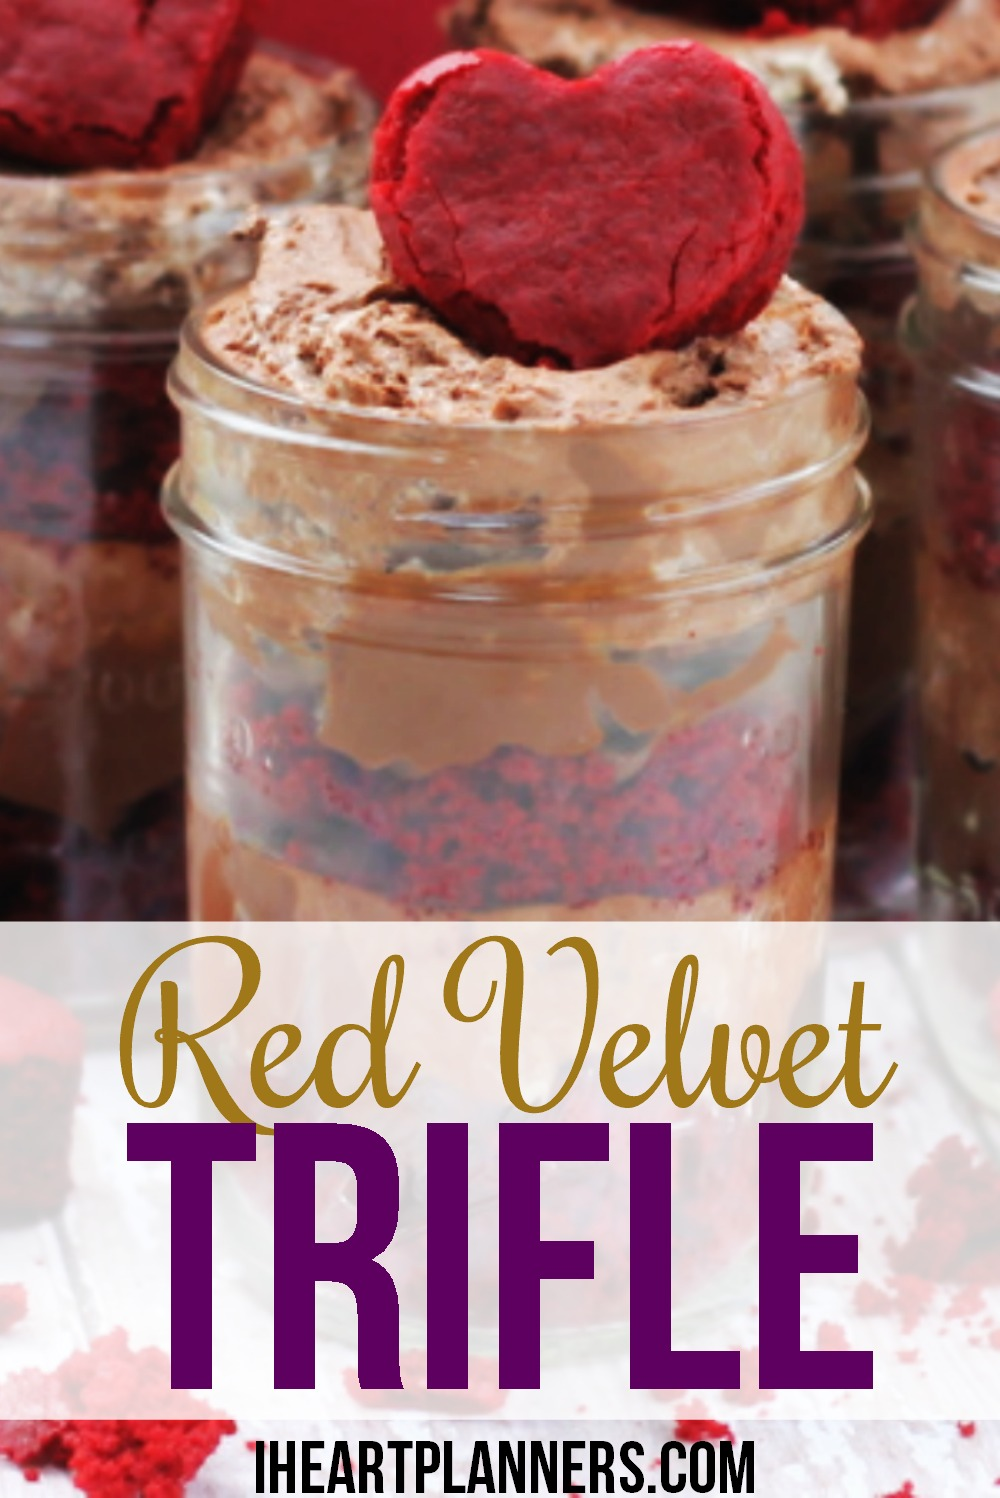 Red Velvet Trifle - This chocolate dessert is perfect for Valentine's Day or any holiday! Red velvet cake with chocolate mousse and chocolate pudding. A match made in heaven!